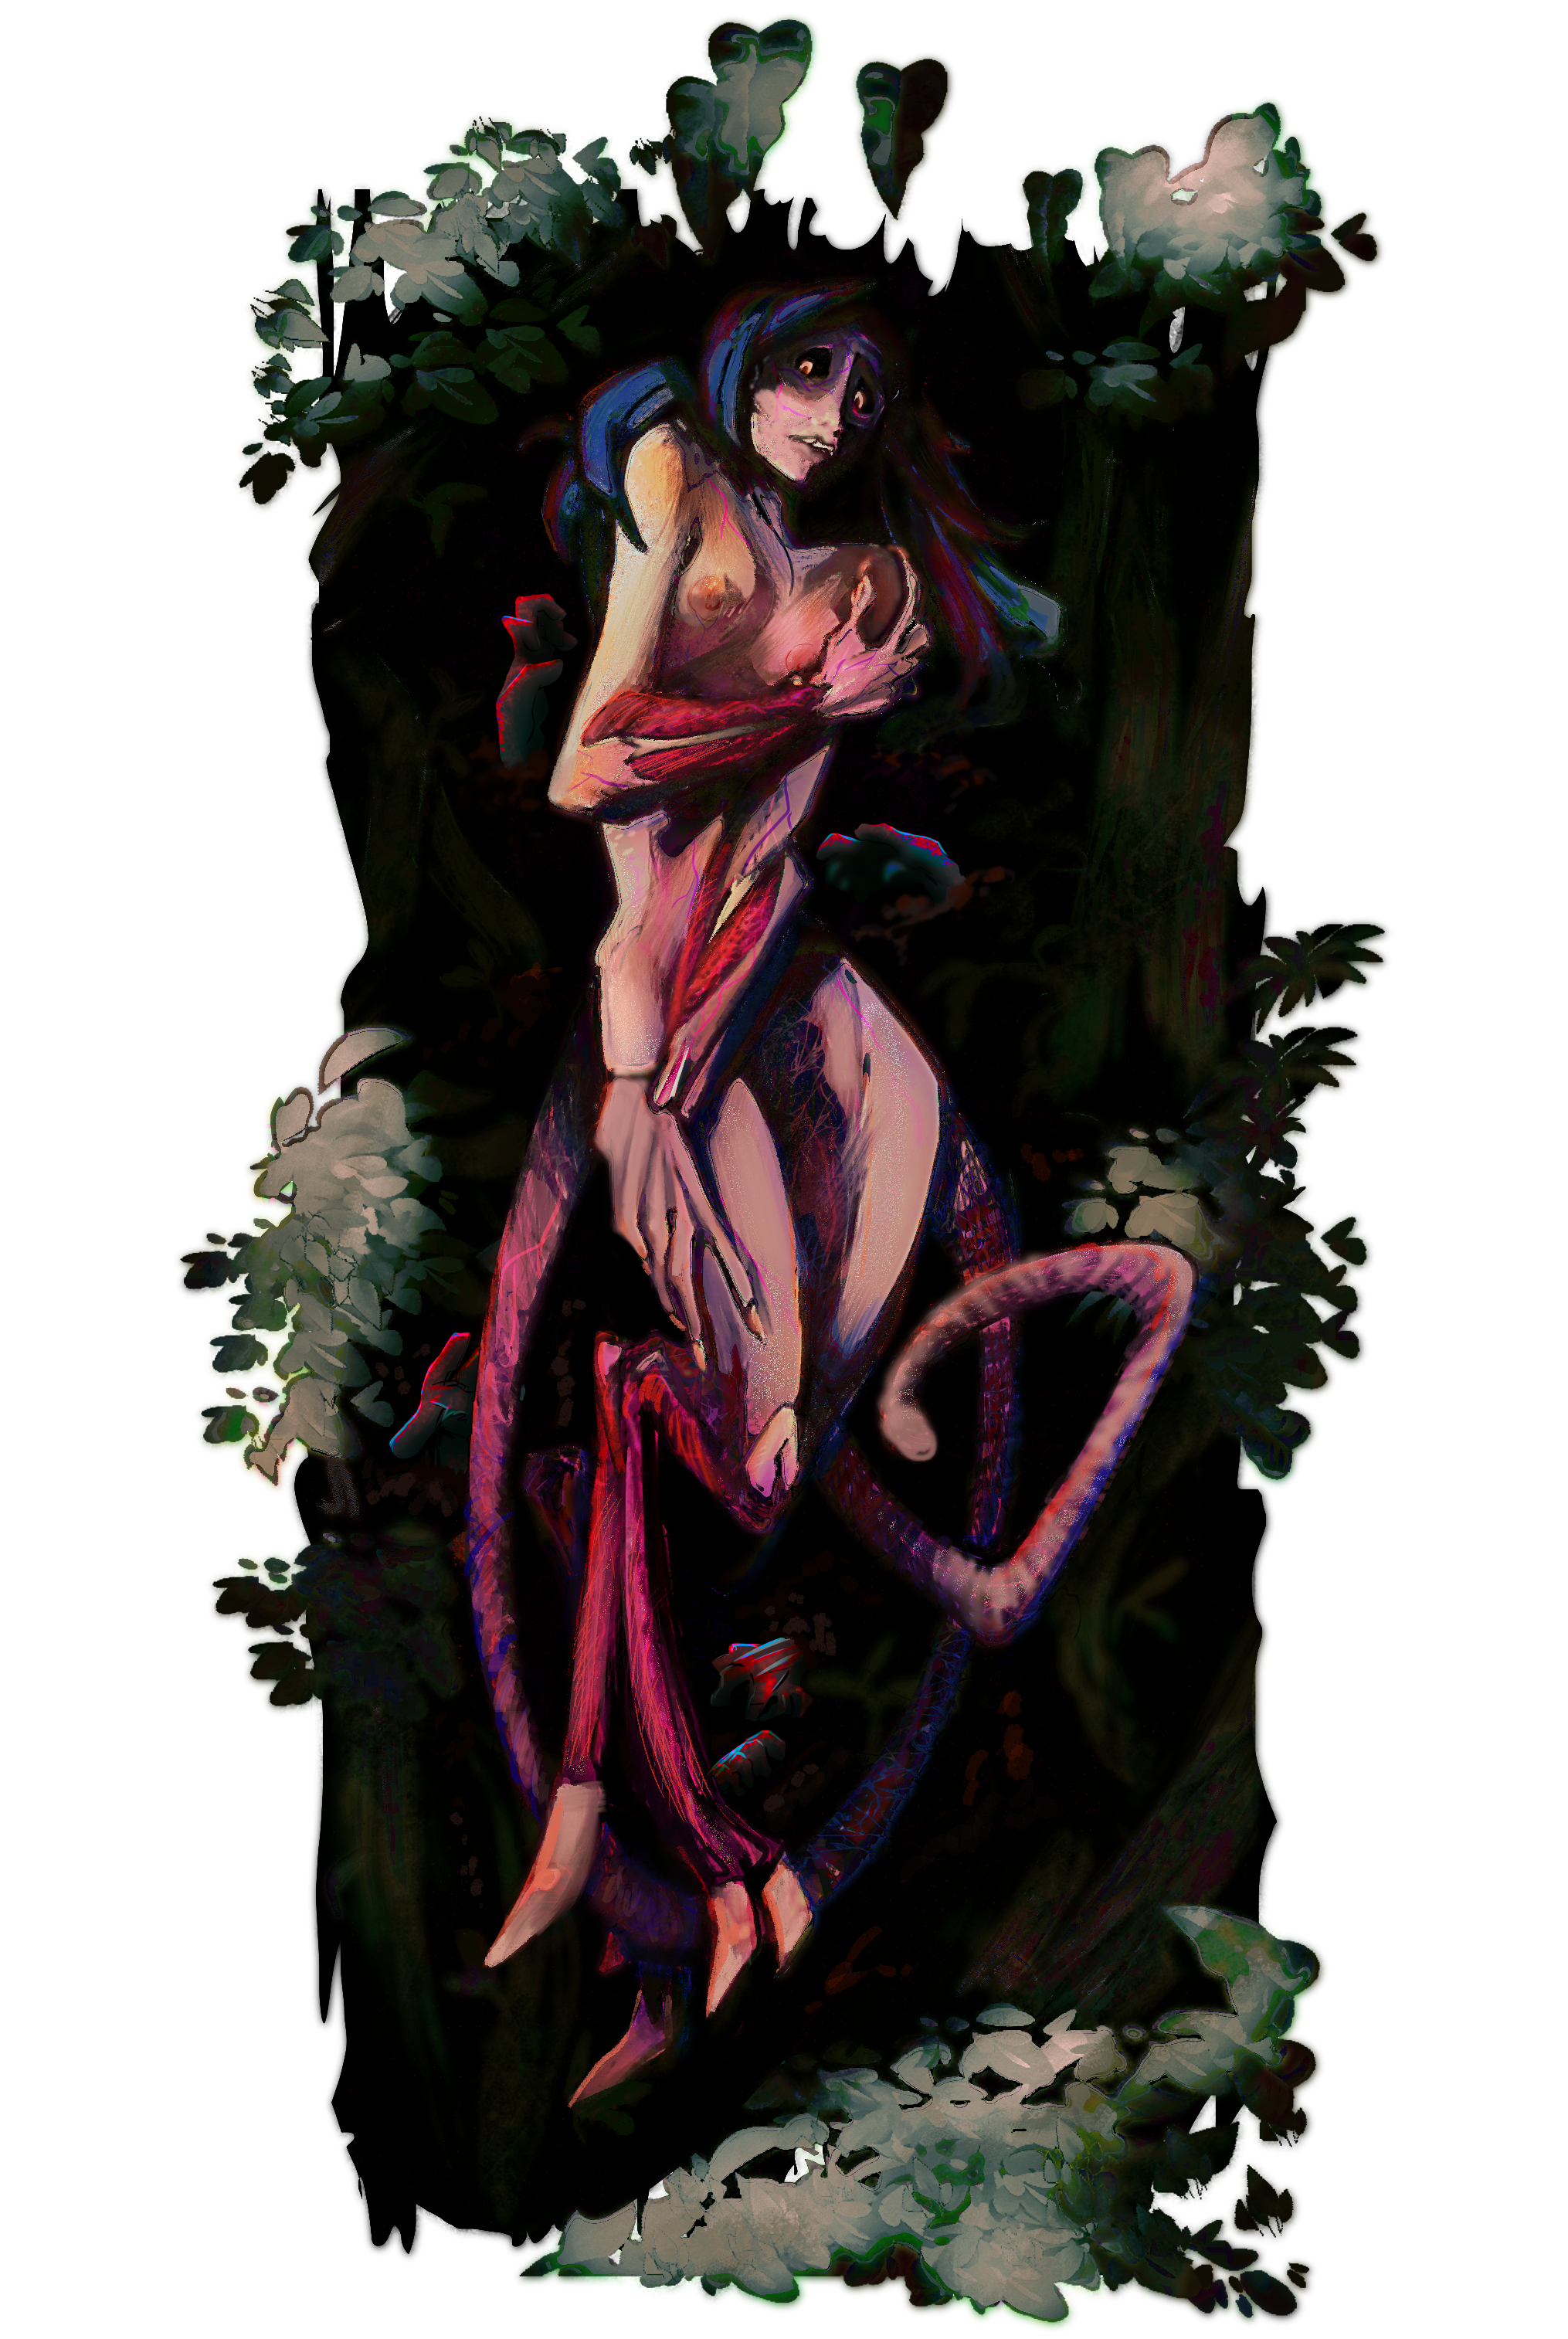 lamia_by_scribbedled_death